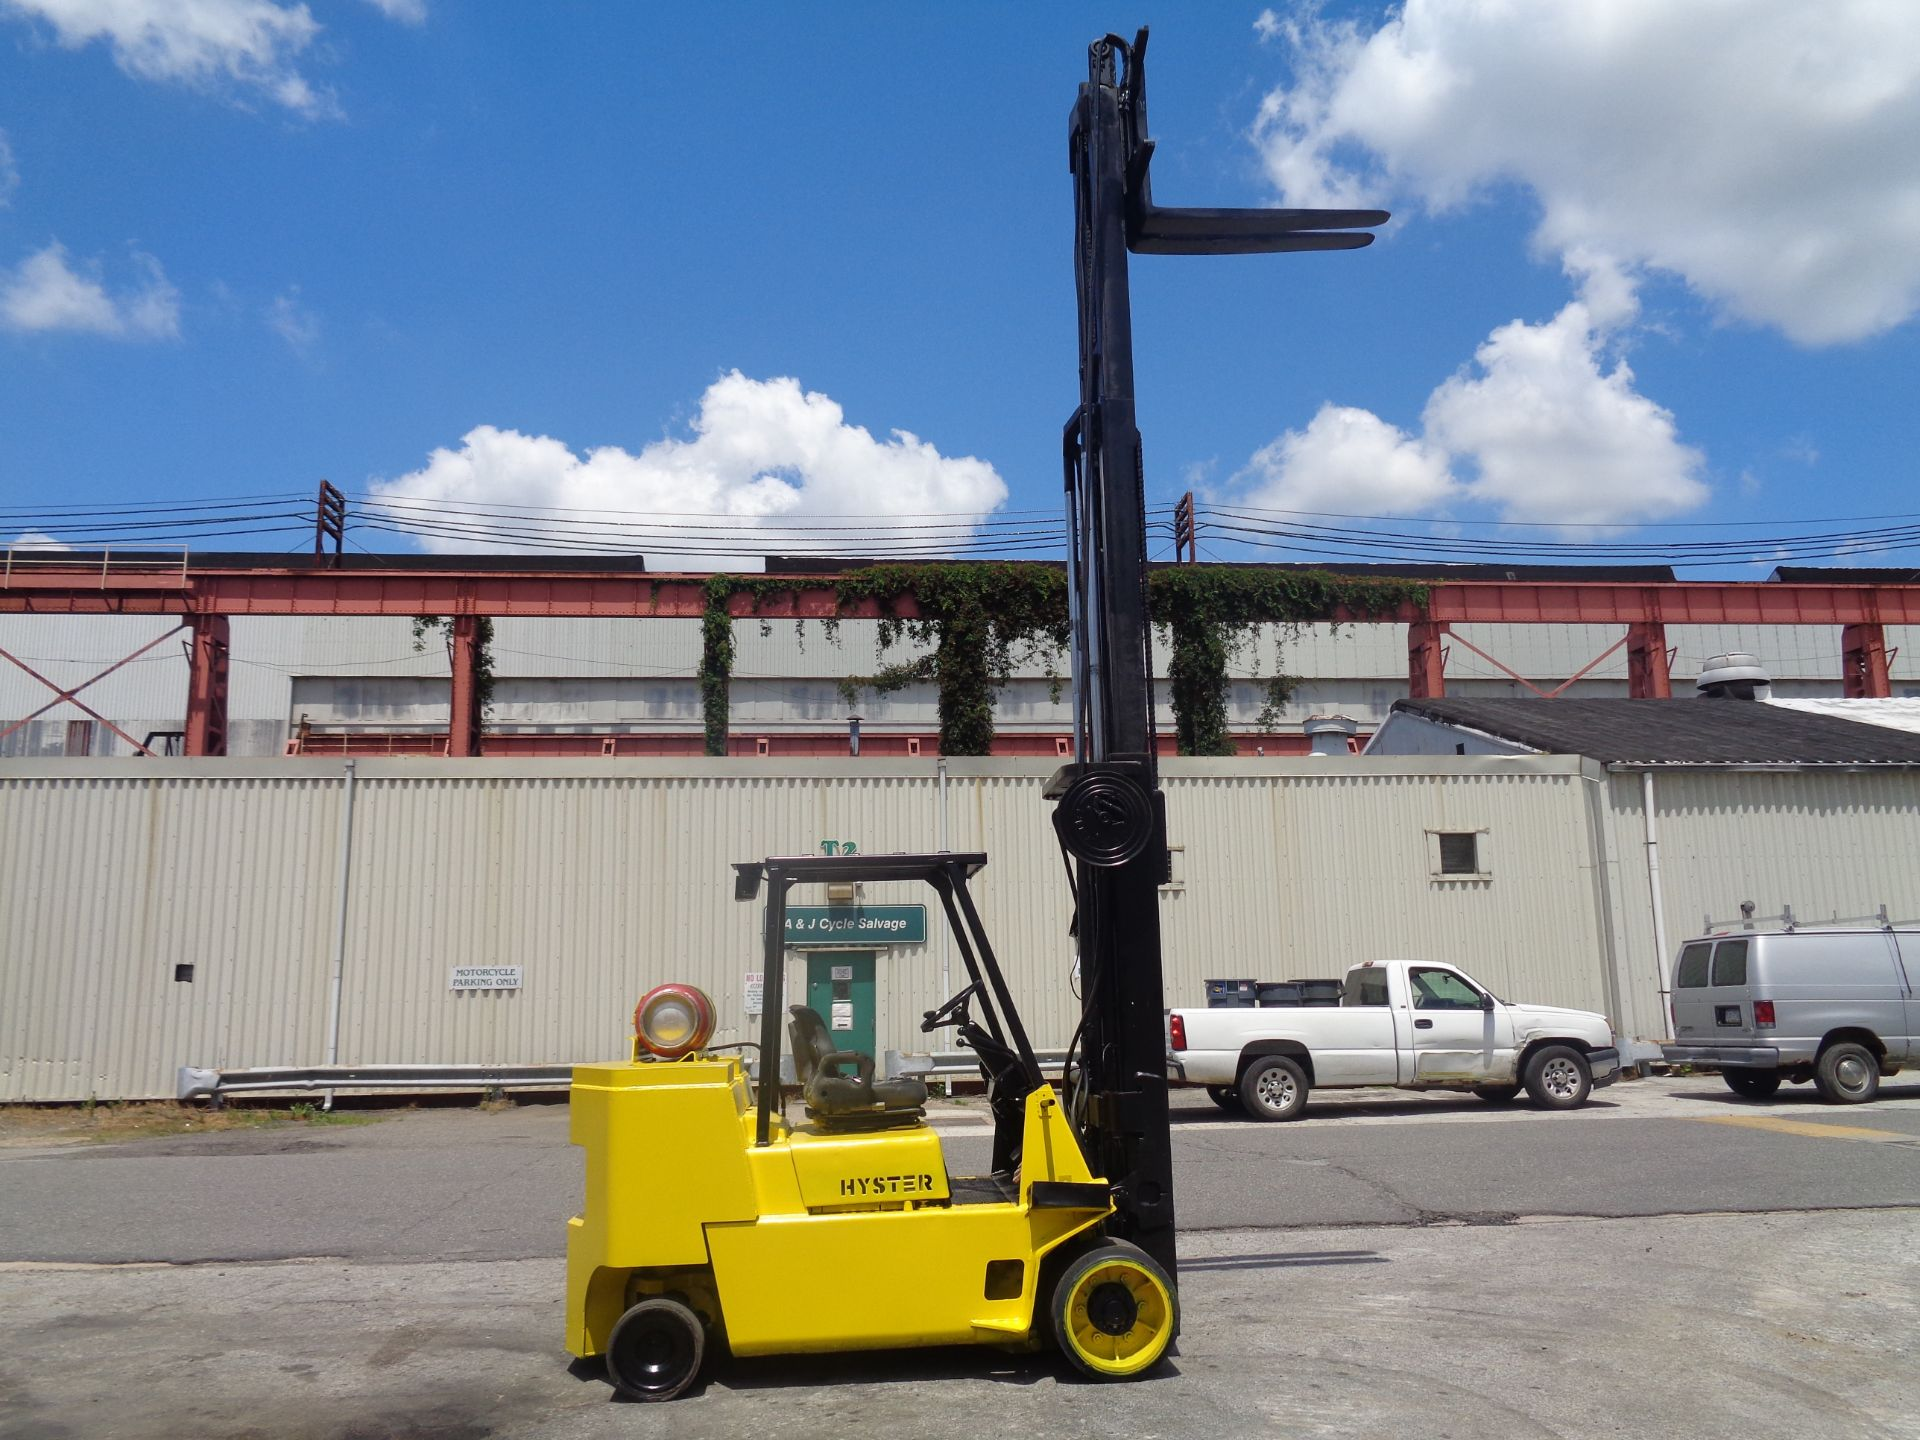 Hyster S120XL 12,000lb Forklift - Image 11 of 14